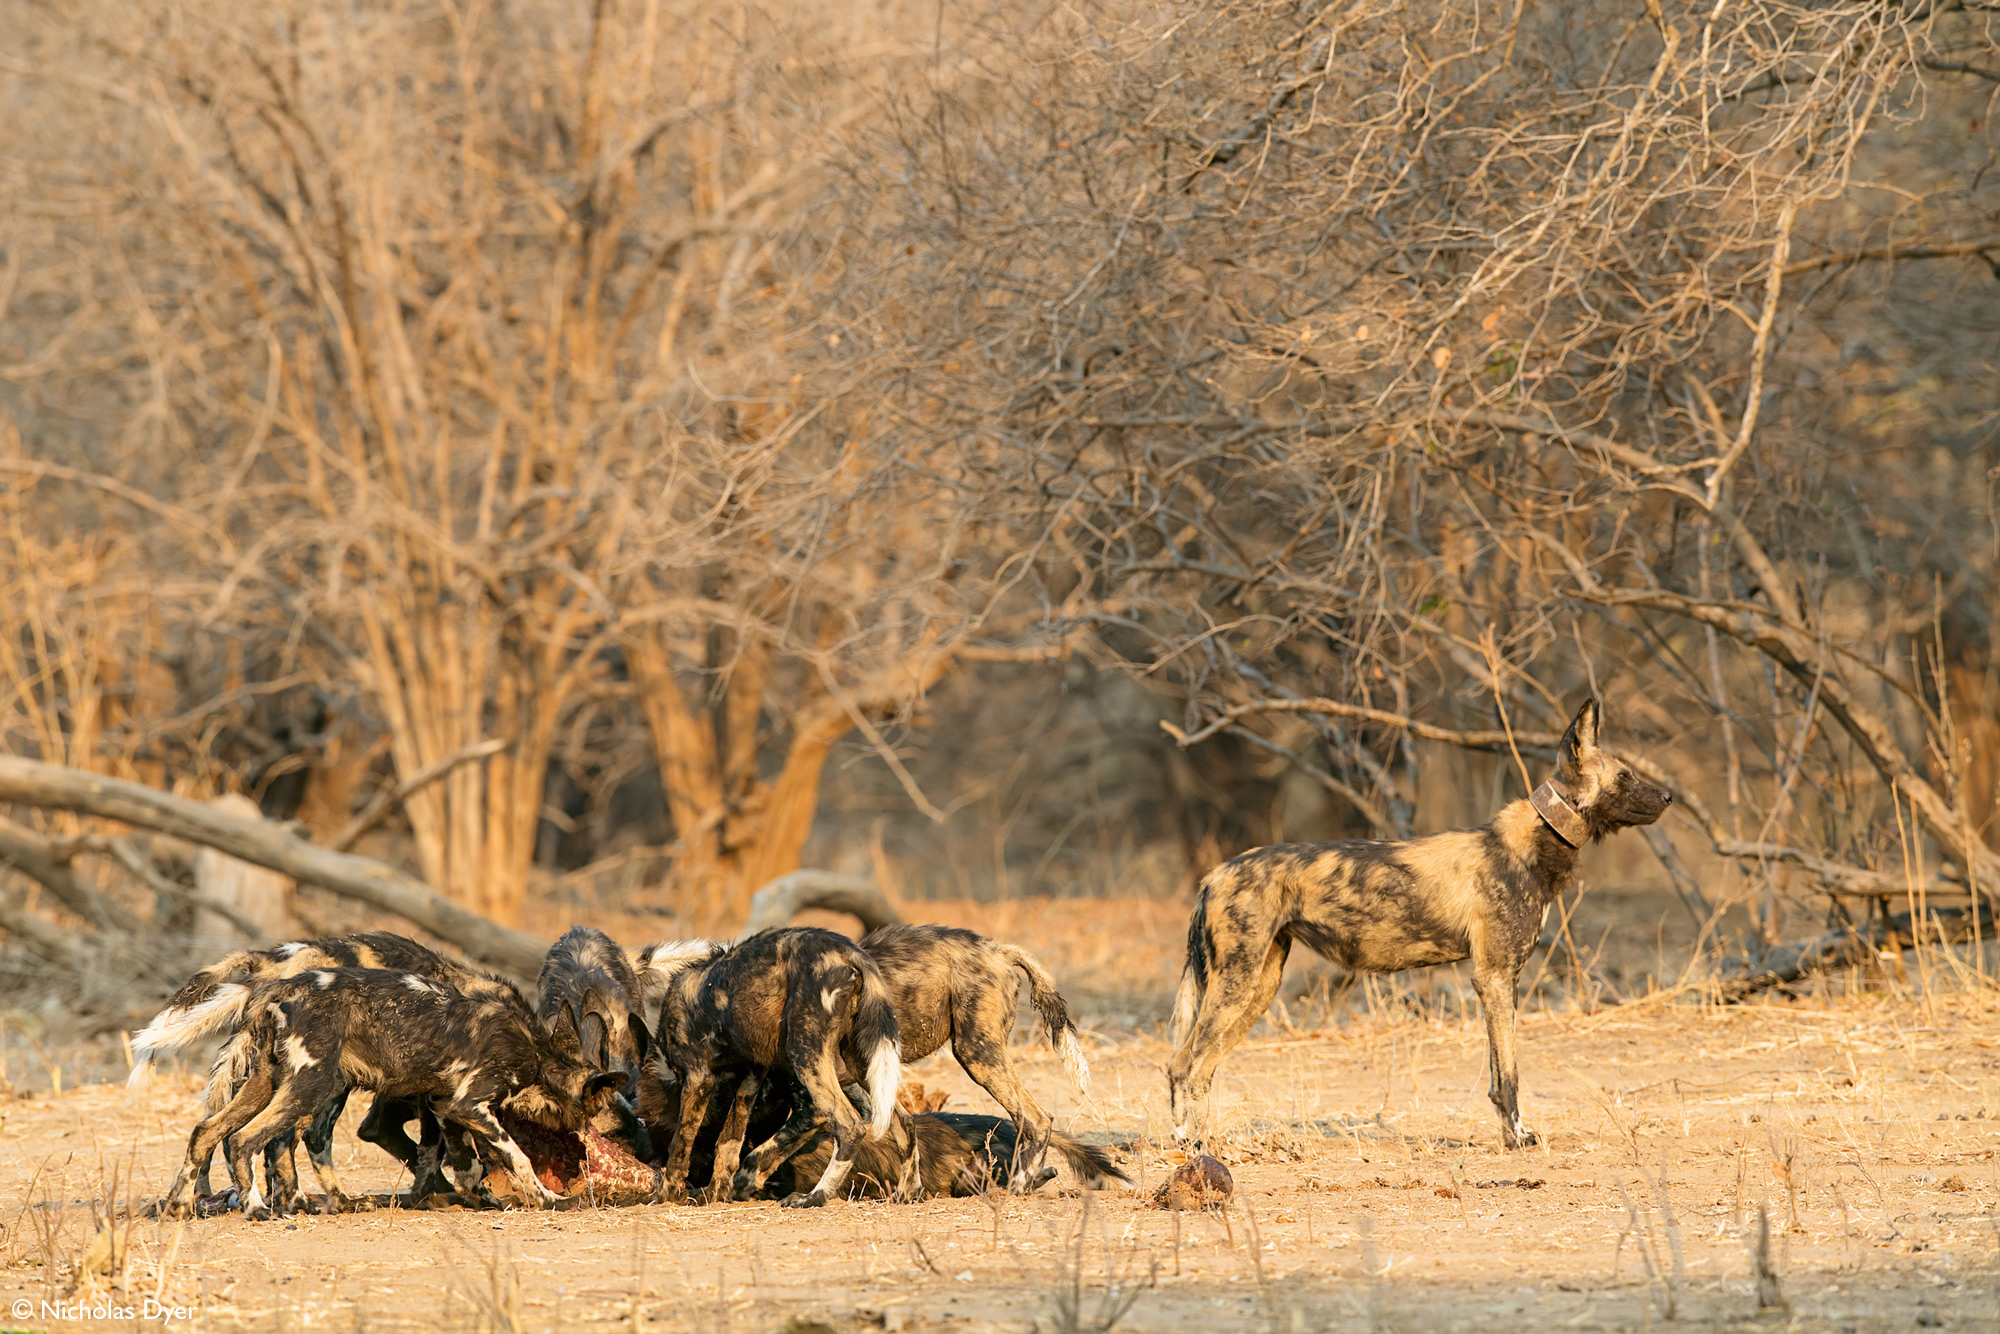 Painted wolves, African wild dogs, eating in Mana Pools National Park, Zimbabwe